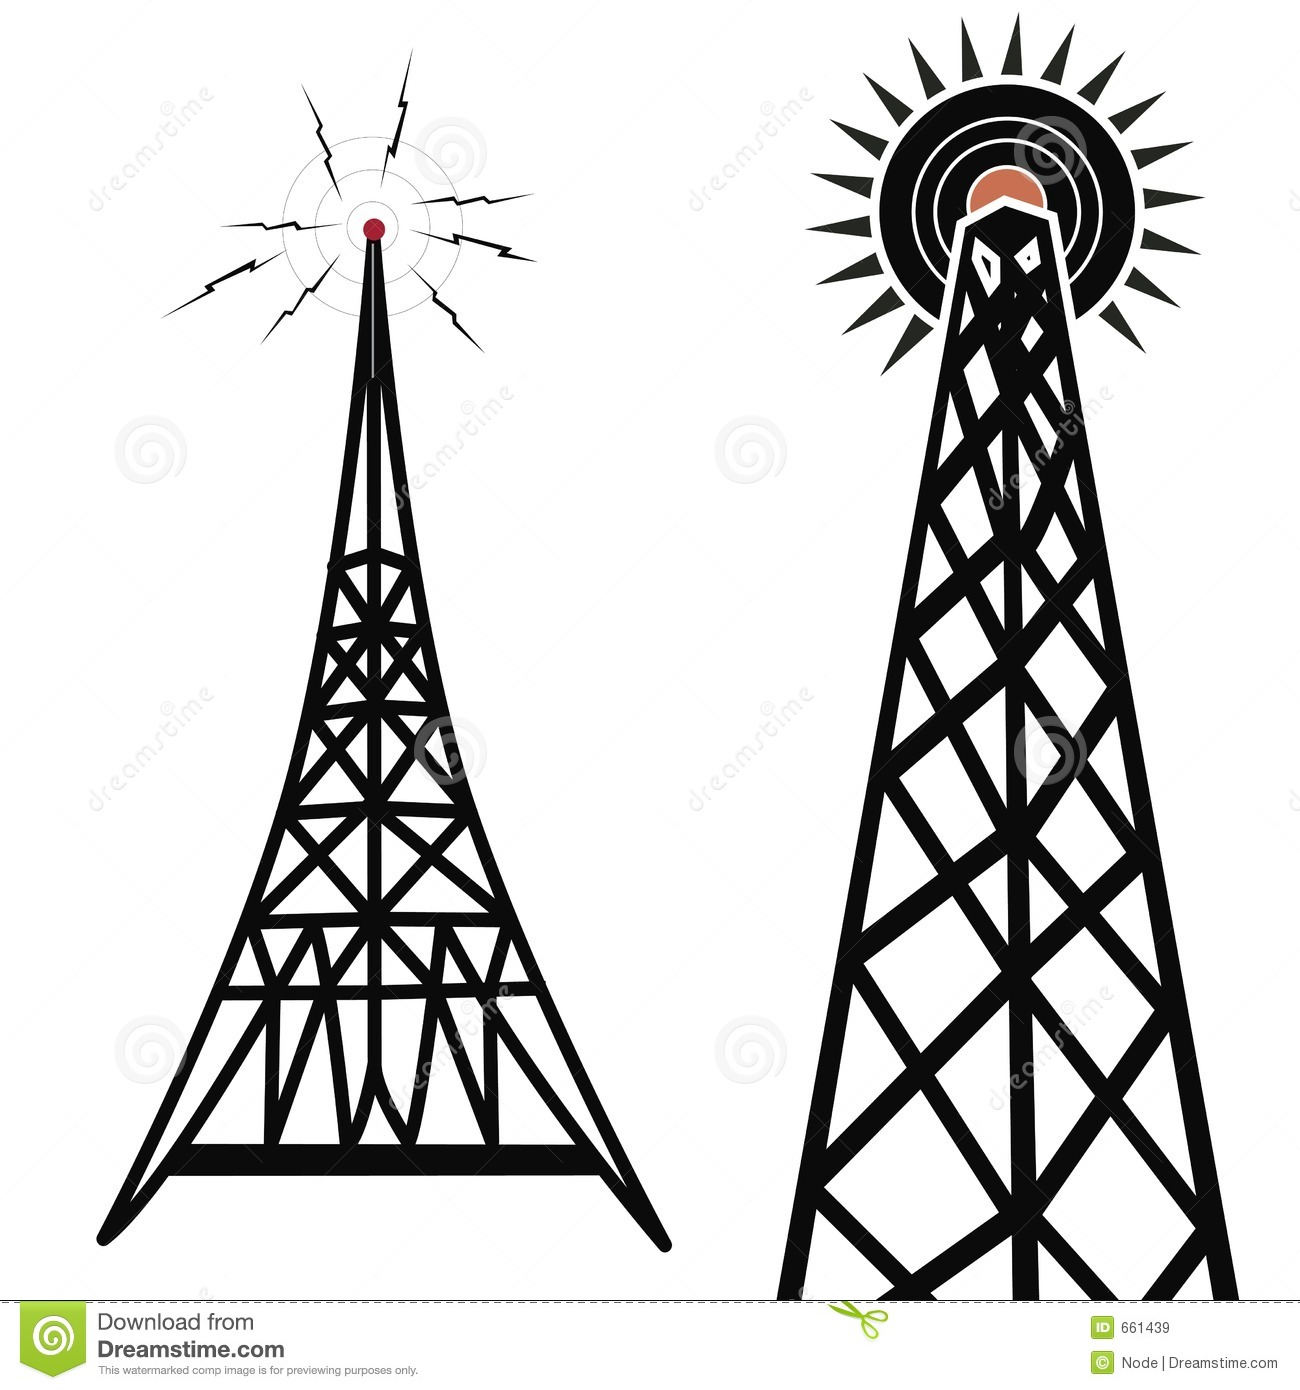 Broadcast Tower Vector Images Radio Towers icon